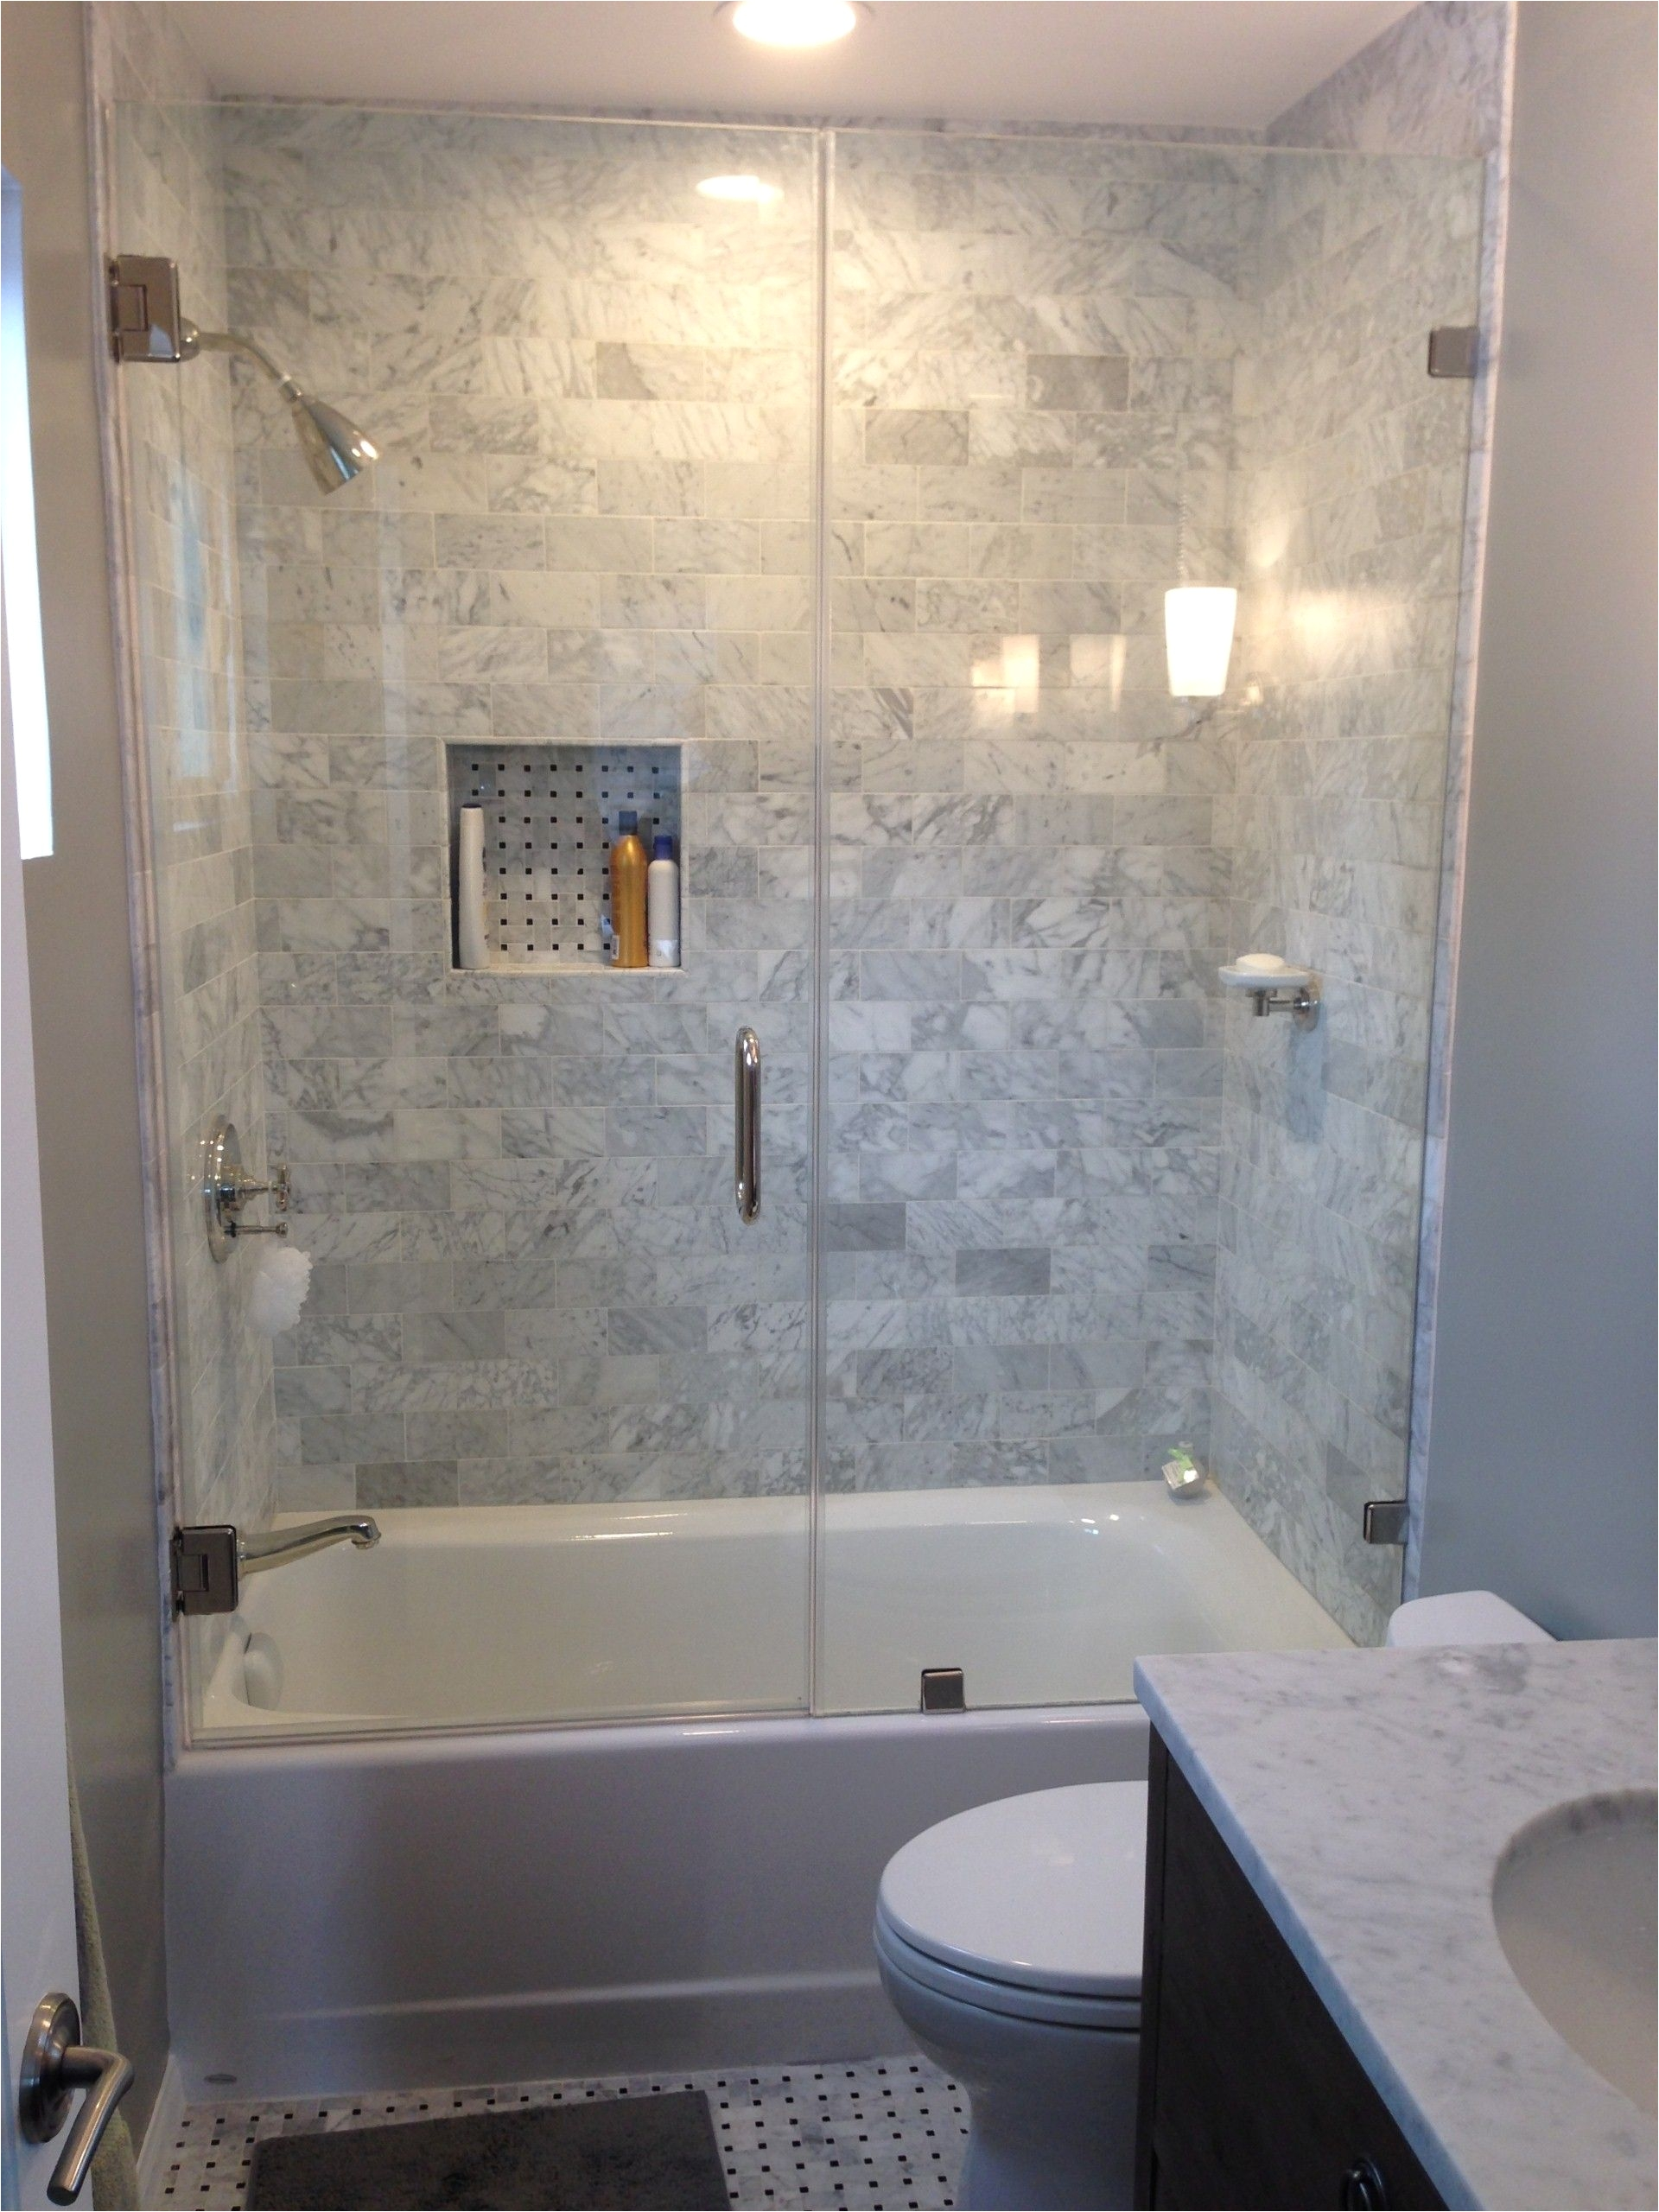 bathtub shower combo can work with an endless array of design styles and is perfect for